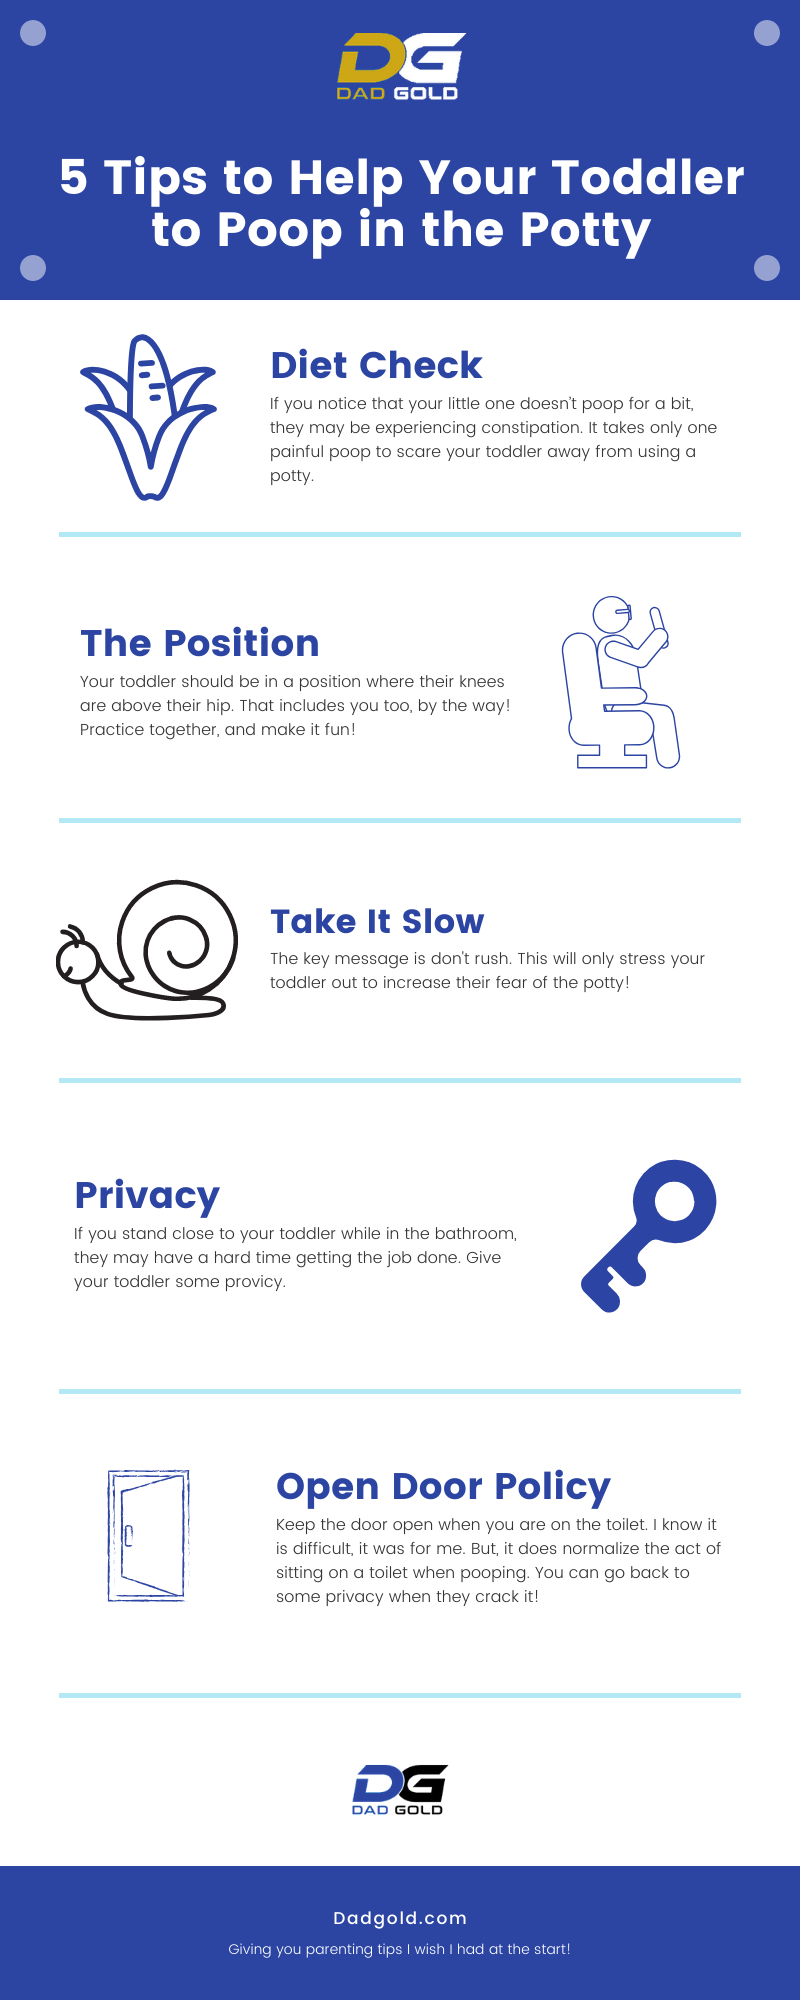 5 Tips to Help Your Toddler to Poop in the Potty Infographic